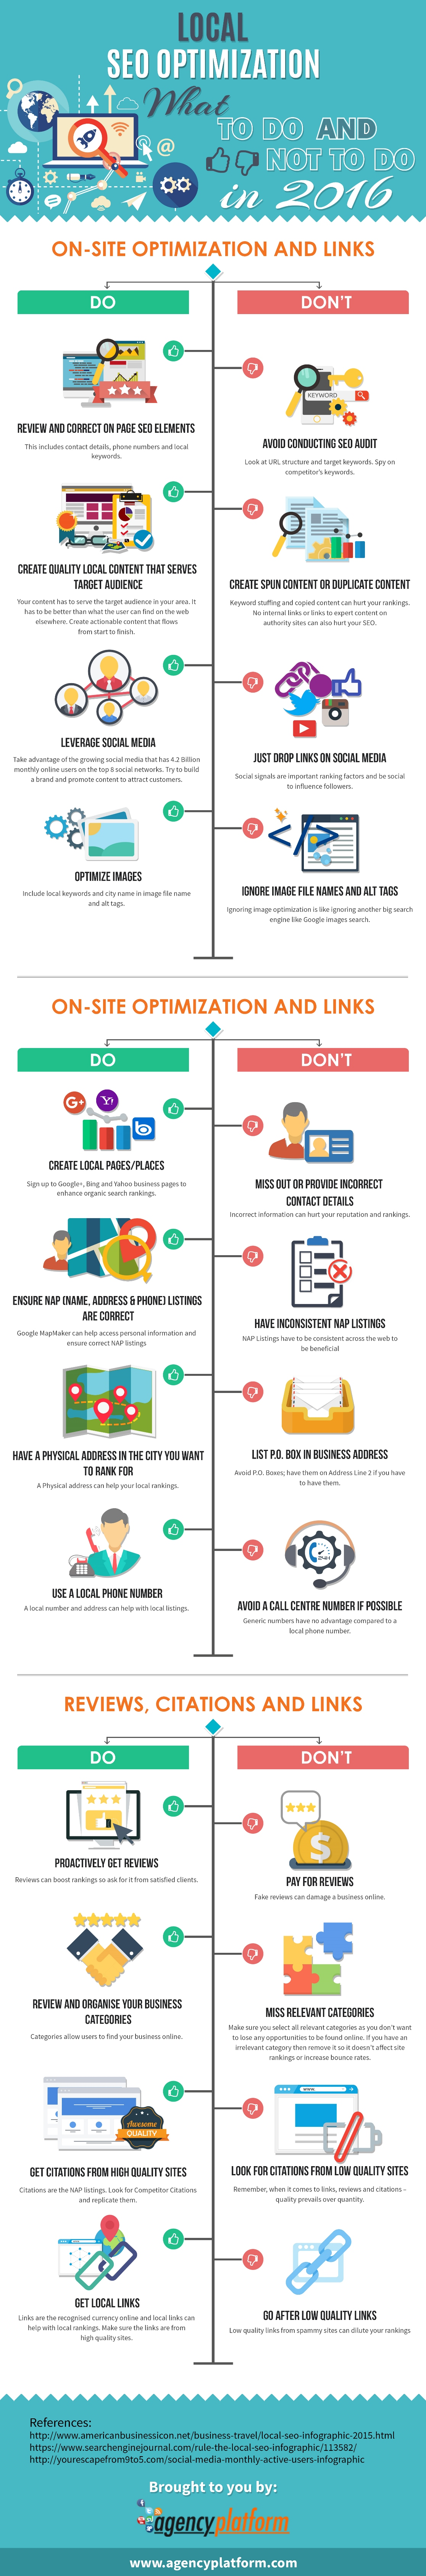 Local SEO - What to Do and Not Do in 2016